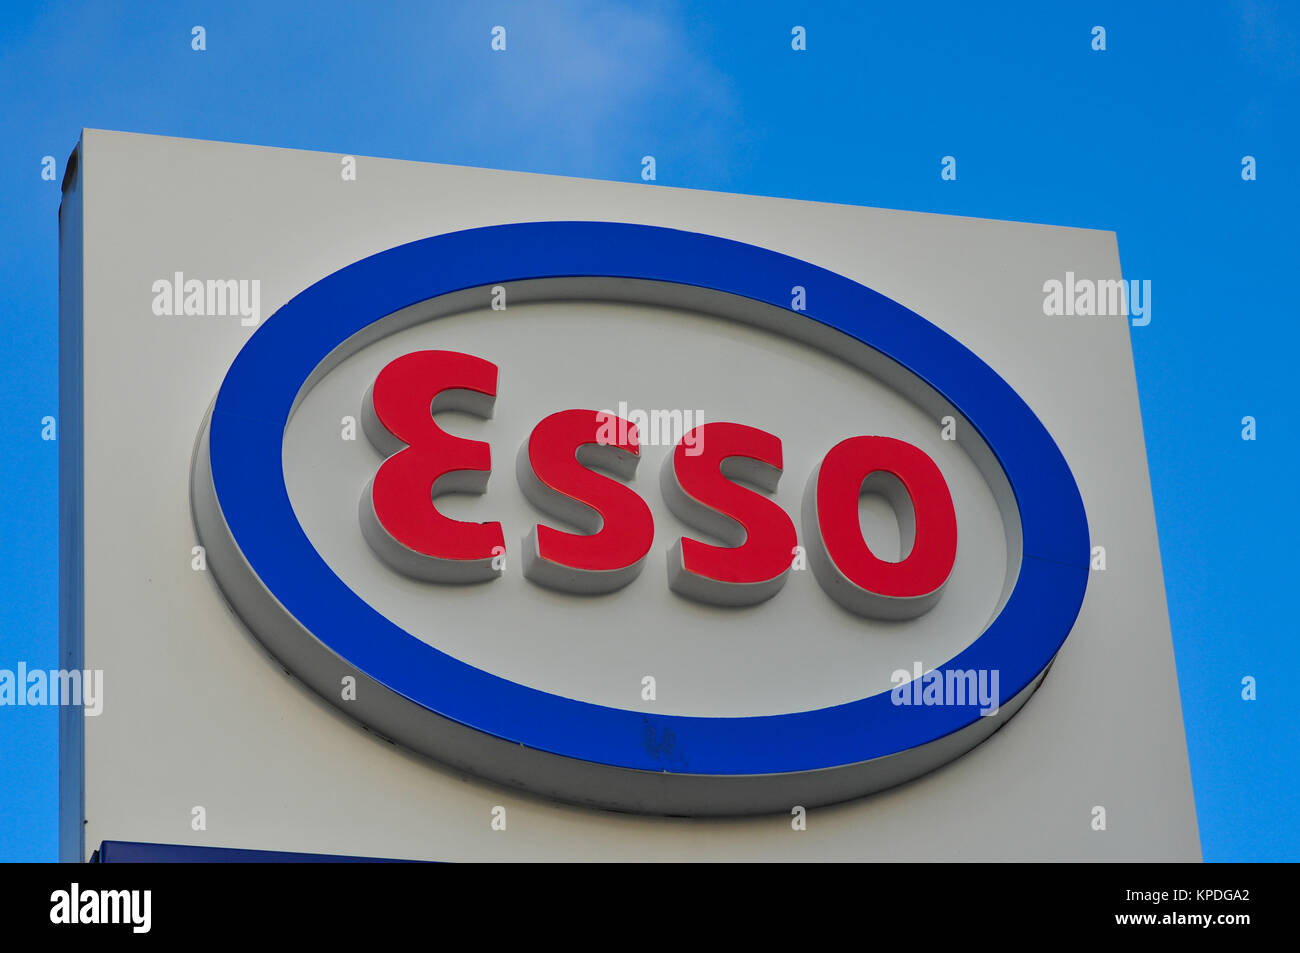 Esso petroleum company brand and logo - Stock Image